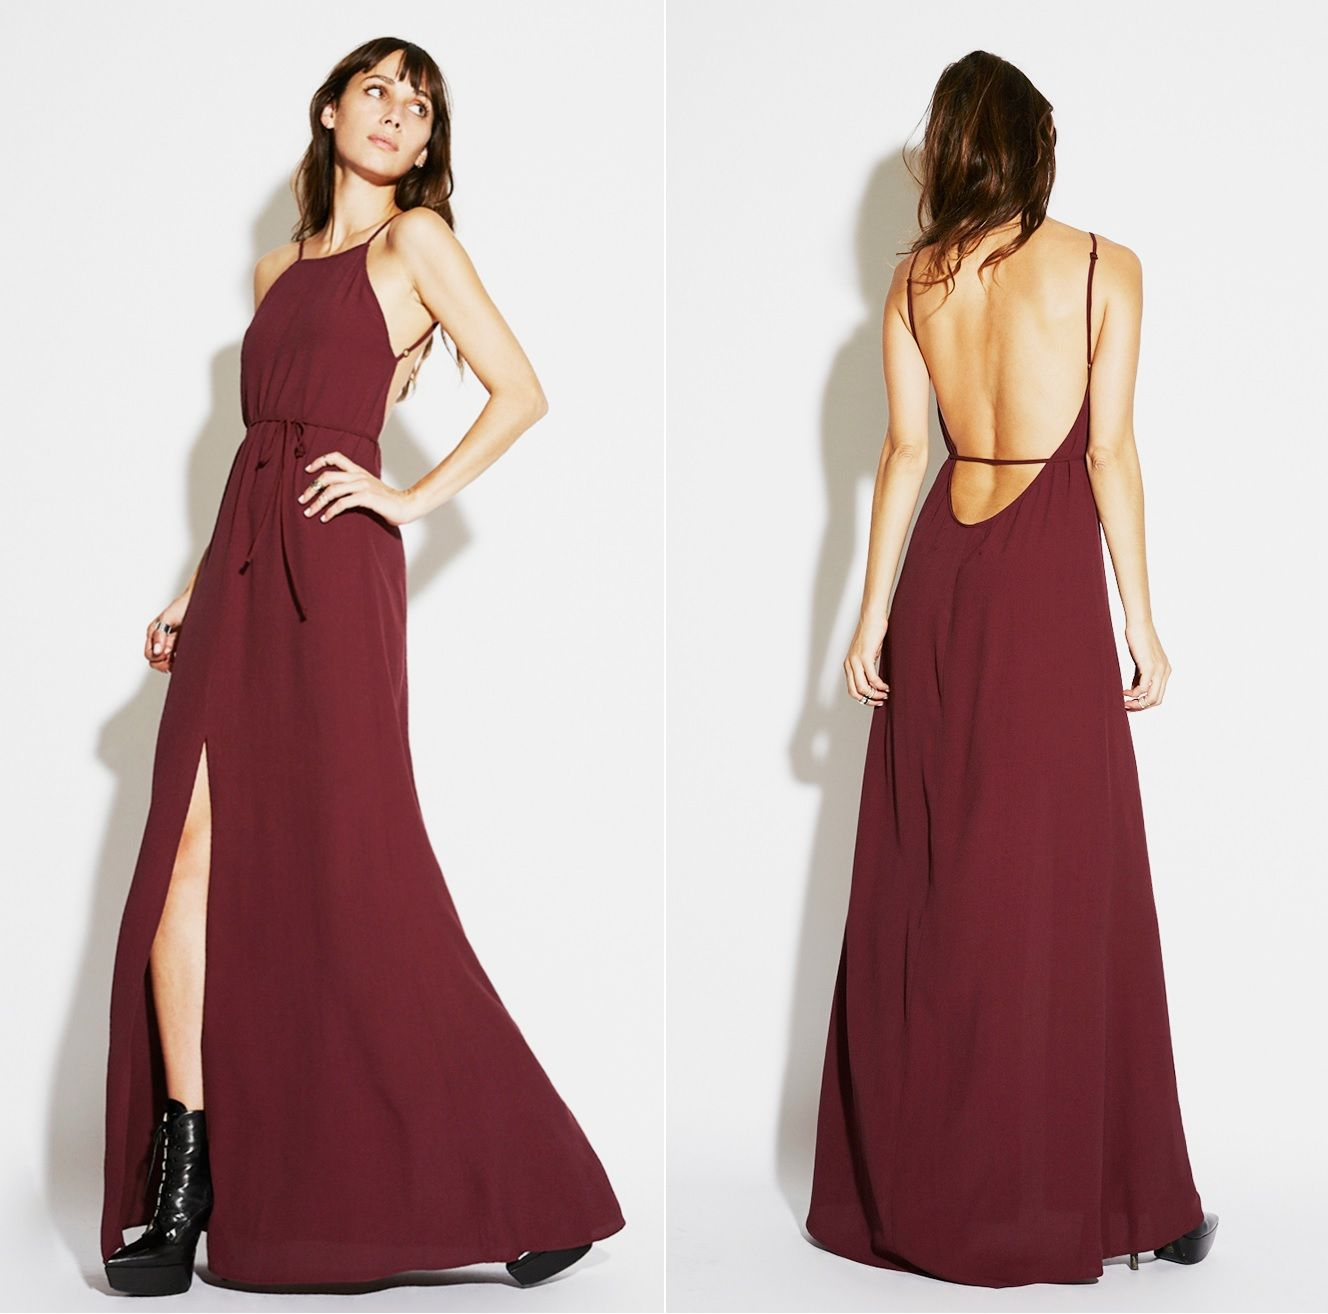 """Reformation Anise Dress in Burgundy: spaghetti-strap maxi dress with a high neck in the front and a really low back, fitted through the waist and then gets full in the skirt. 100% viscose. Length: 57.5"""" $198.00"""